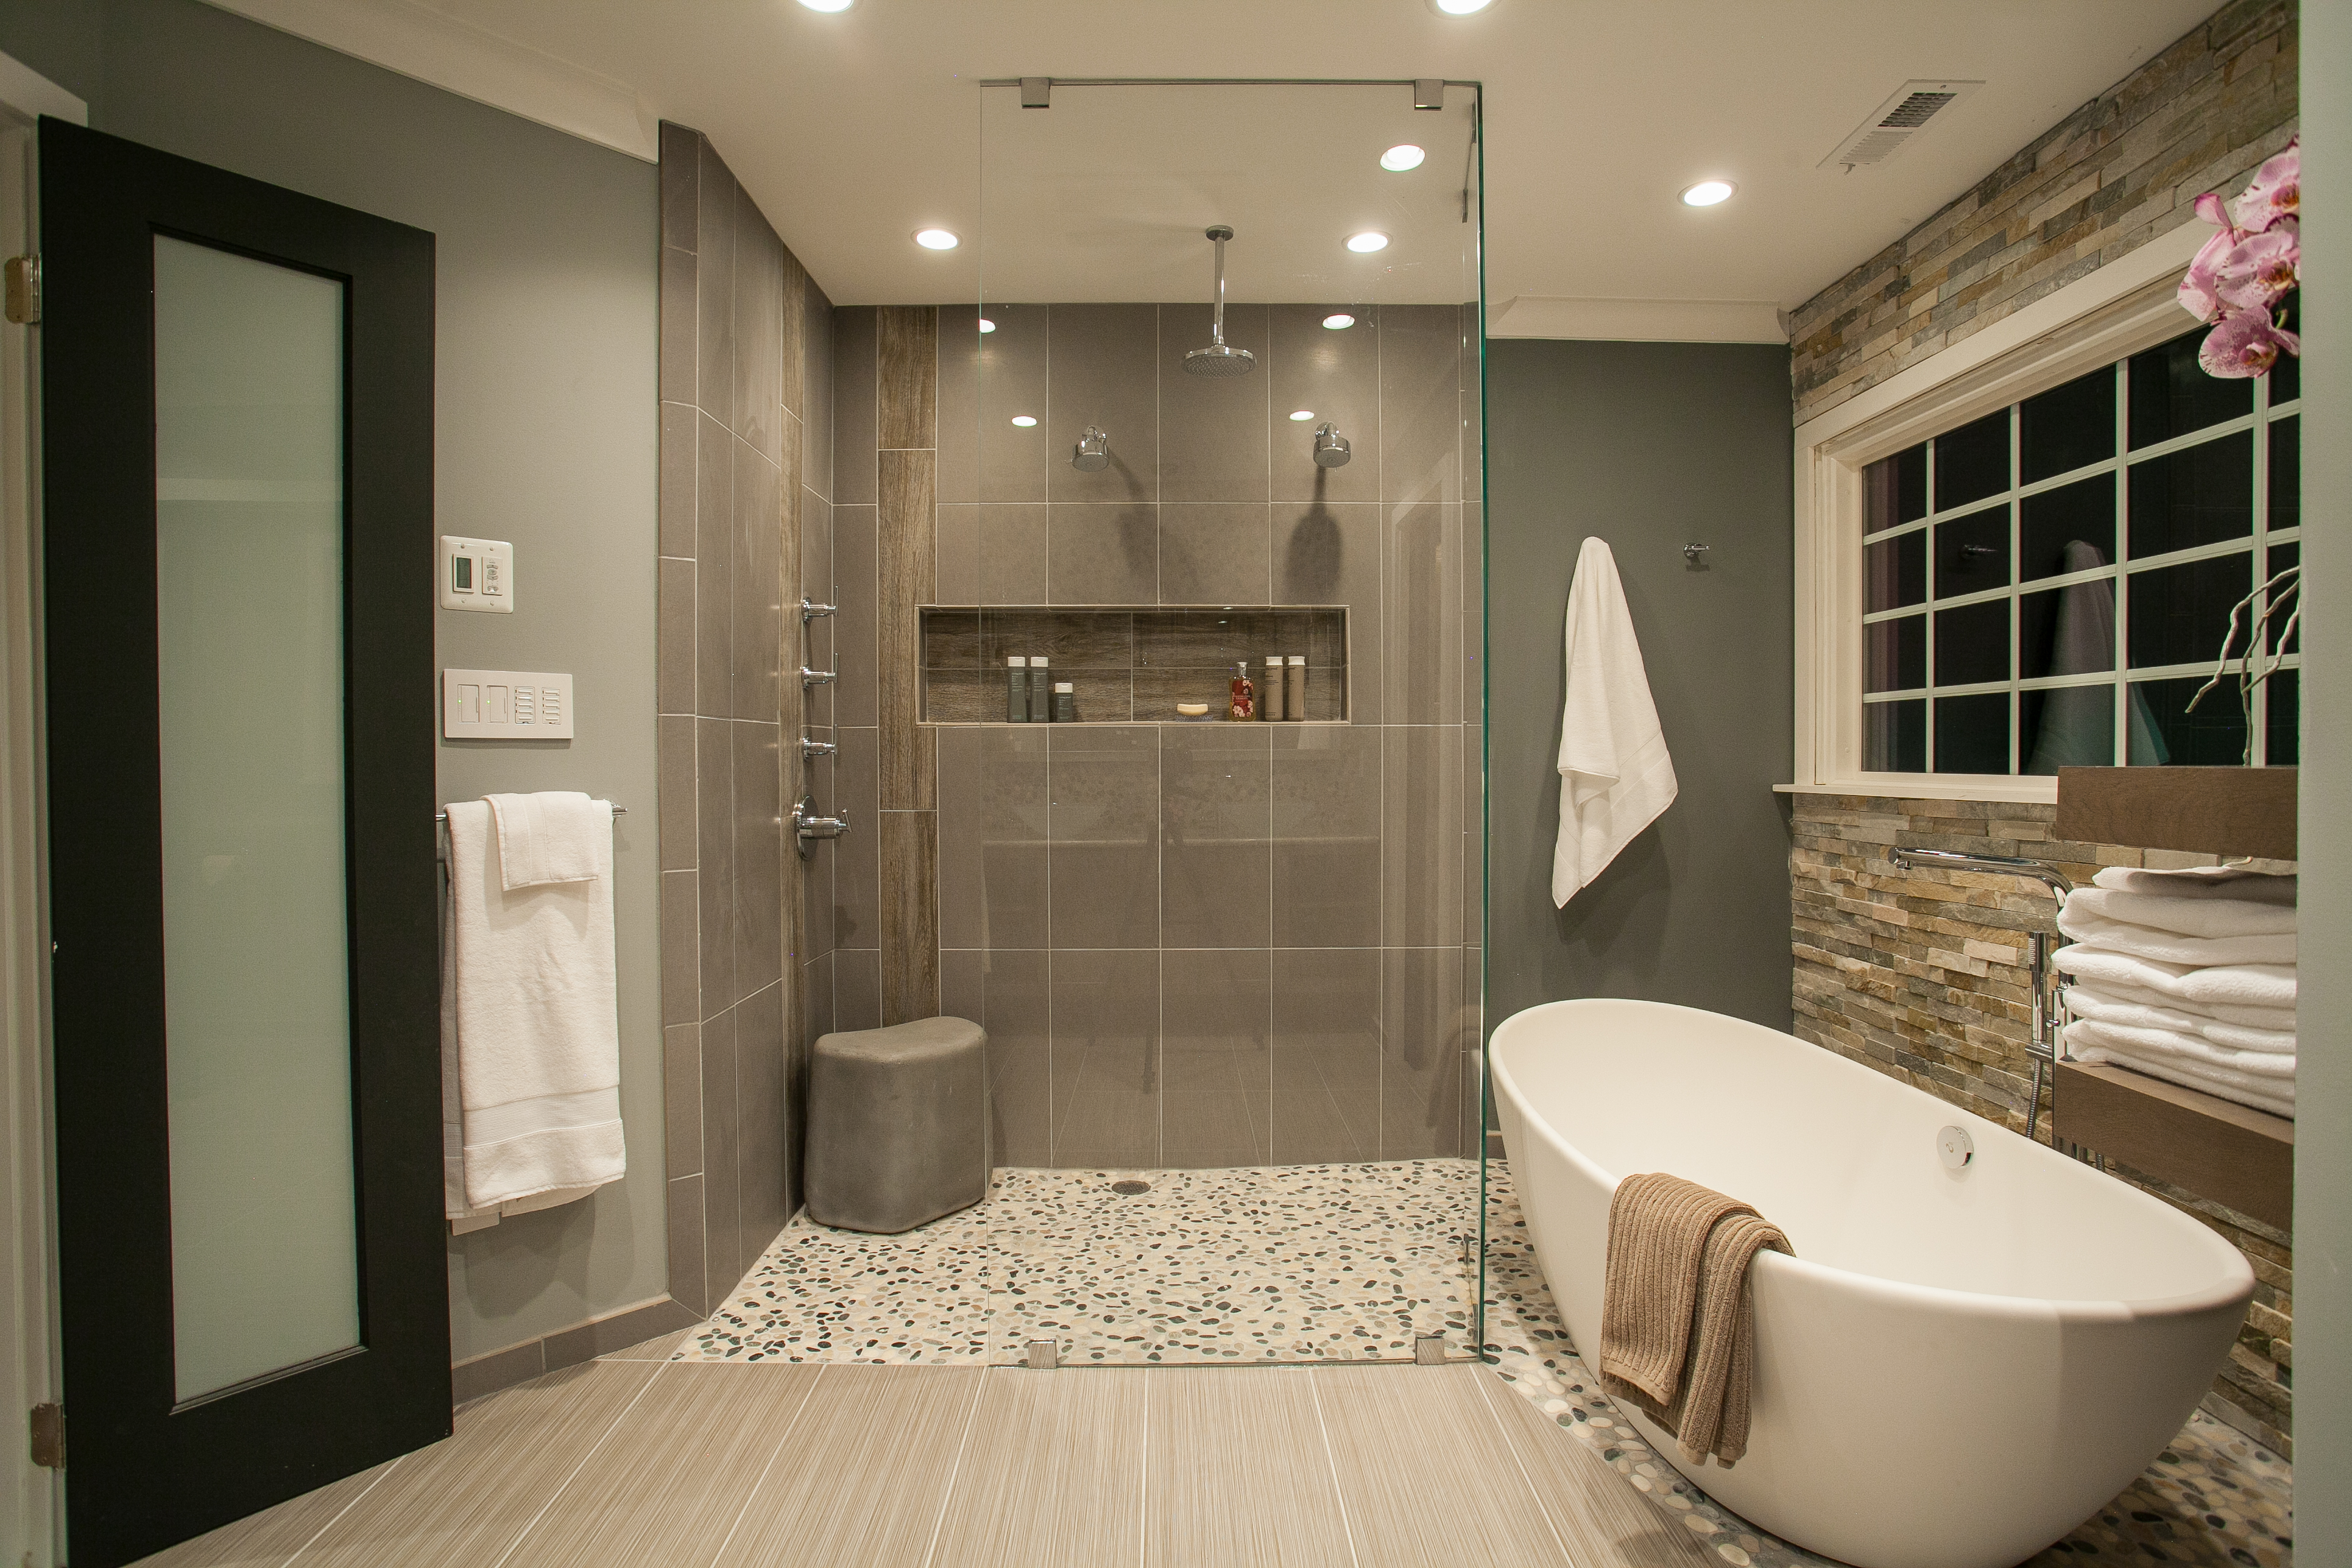 spa bathroom images photo - 8